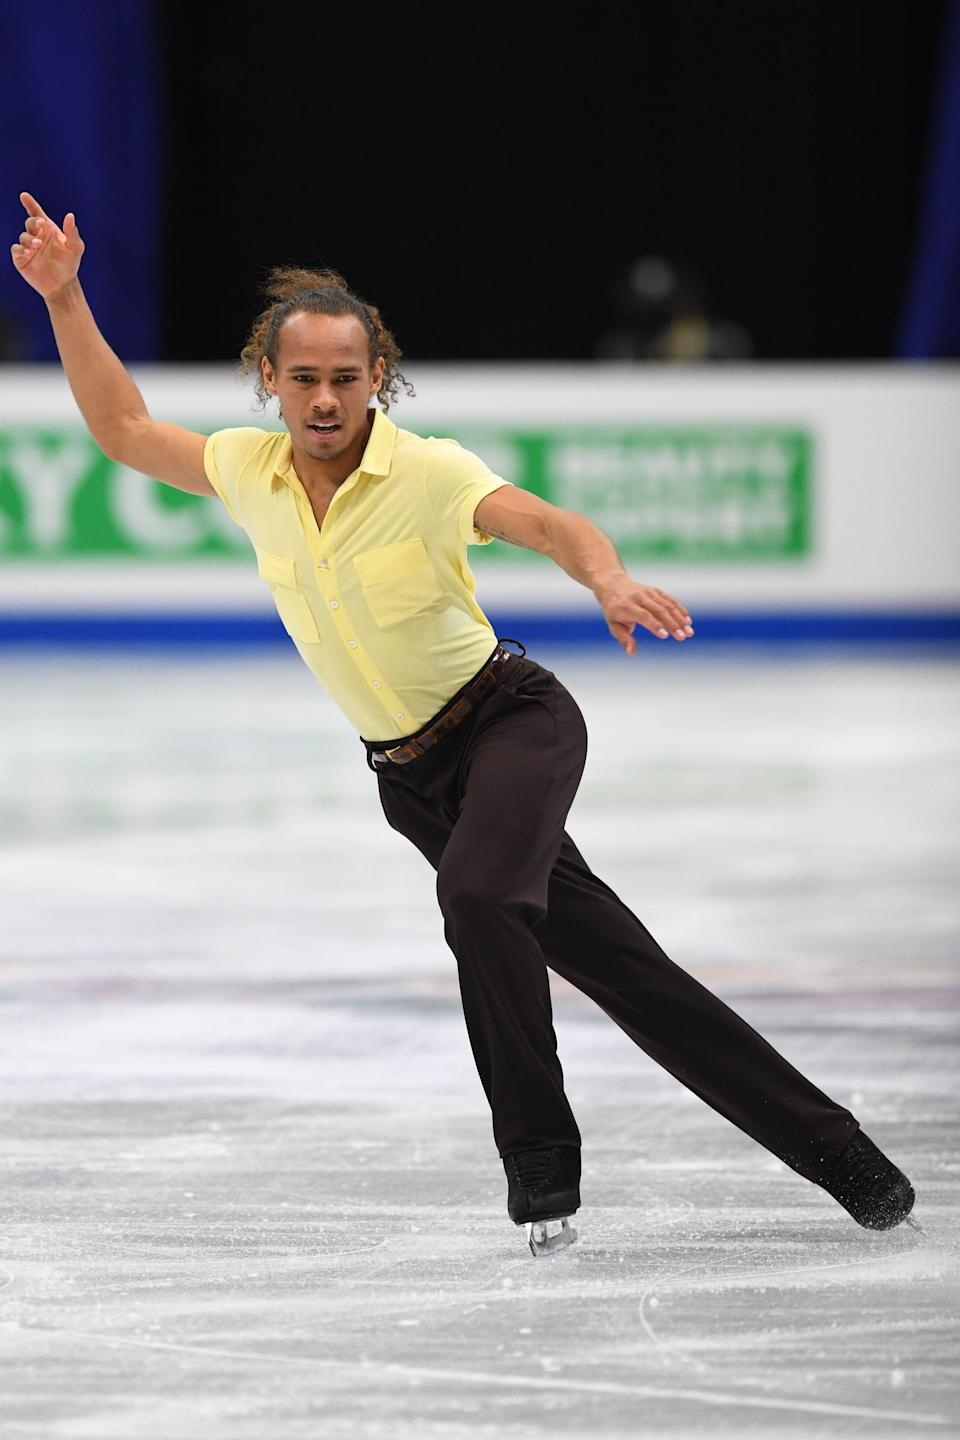 TAIPEI, TAIWAN - JANUARY 27:  Elladj Balde of Canada competes in the men free skating during day four of the Four Continents Figure Skating Championships at Taipei Arena on January 27, 2018 in Taipei, Taiwan.  (Photo by Atsushi Tomura - International Skating Union/International Skating Union via Getty Images)